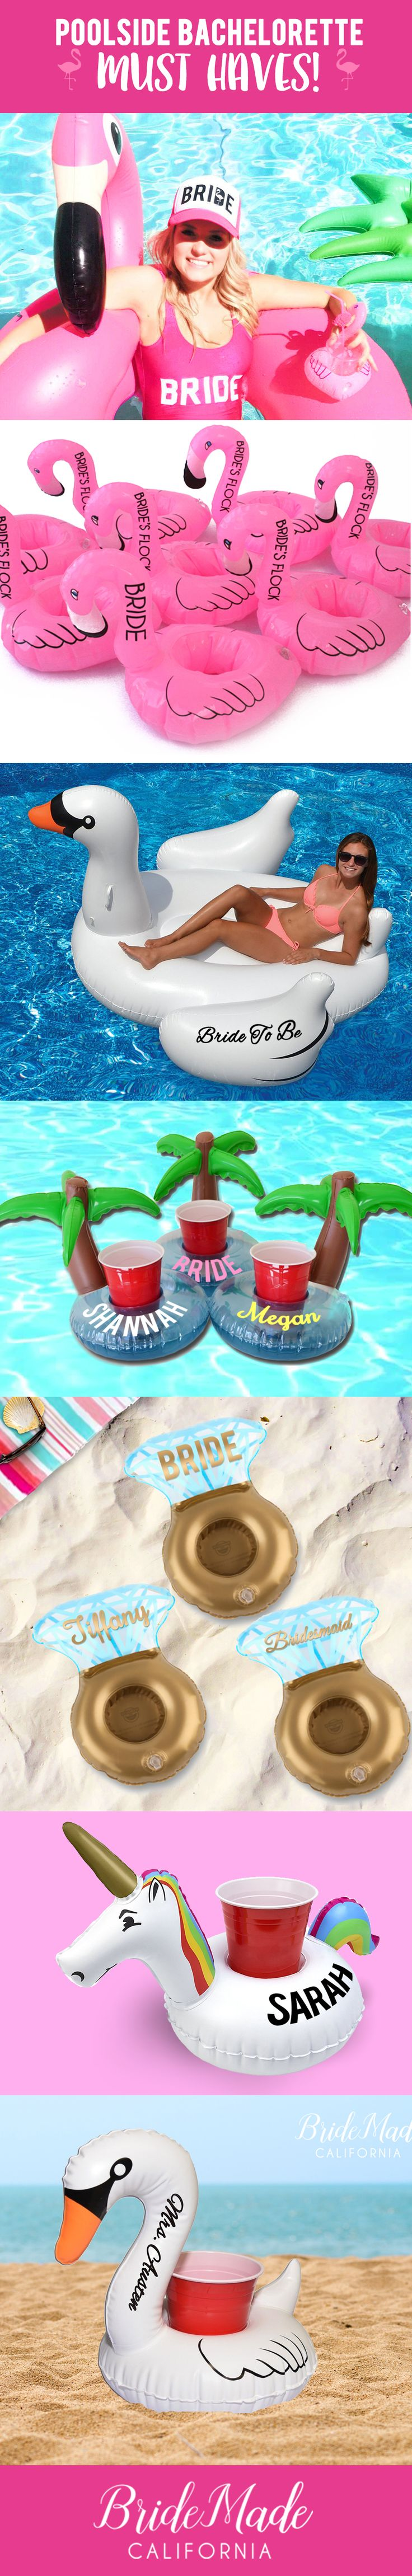 Customizable pool floats for every bachelorette party theme! Will you and your girls be hanging poolside? Wow them and avoid a drink mix up with these beverage boats! We've got plenty to choose from - flamingos, swans, palm trees, unicorns, engagement rings and even giant swans ready for personalization! Perfect for bachelorette party favors, bridesmaid proposal and bridal party gifts! Bachelorette party theme, flamingo bachelorette, cabo bachelorette, vegas bachelorette, beach bachelorette…